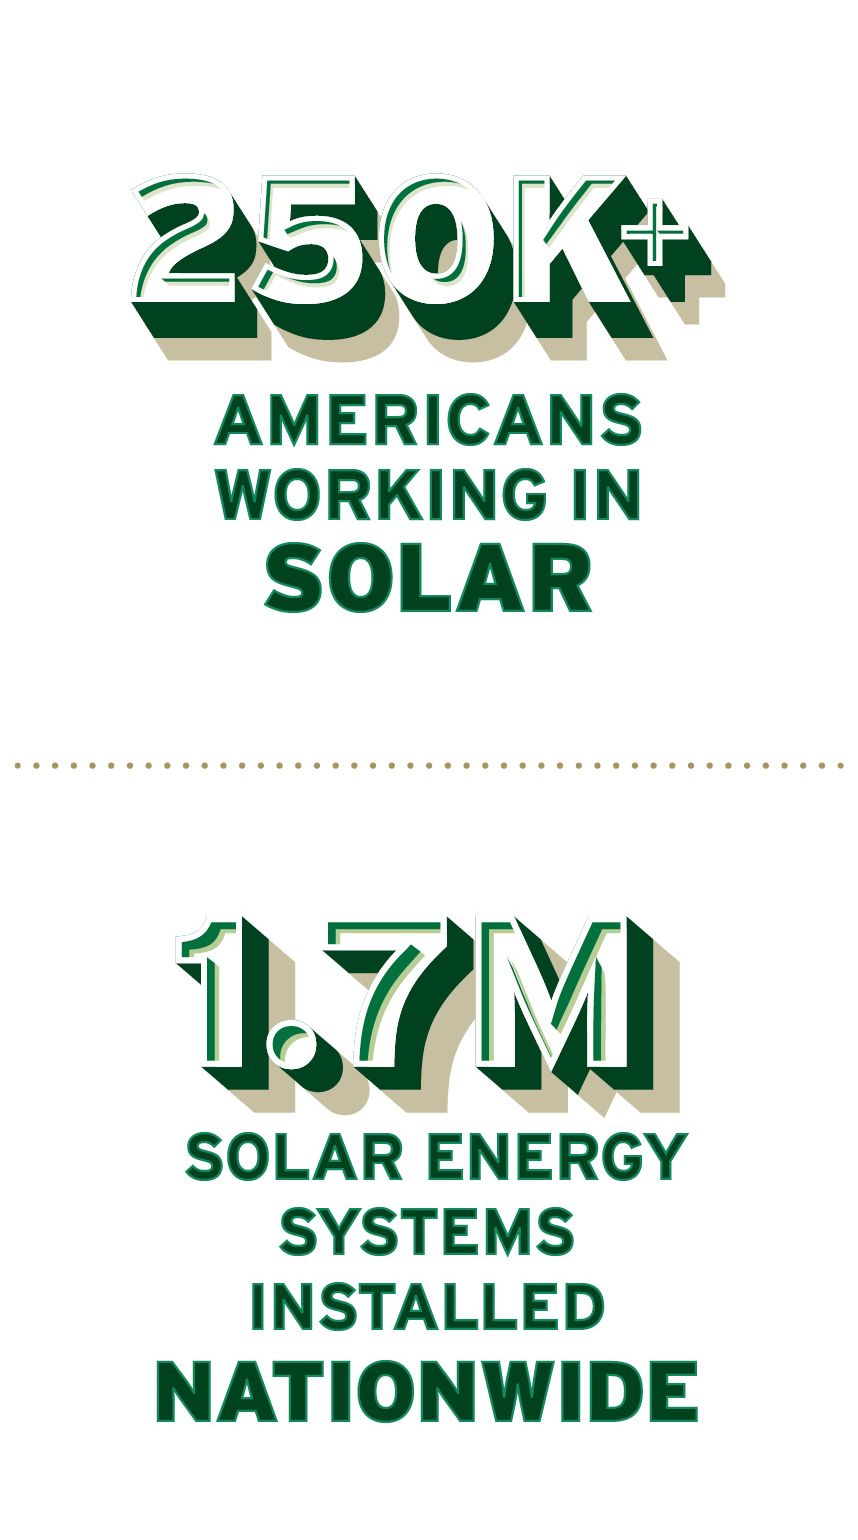 250K Americans working in solar; 1.7M solar energy systems installed nationwide